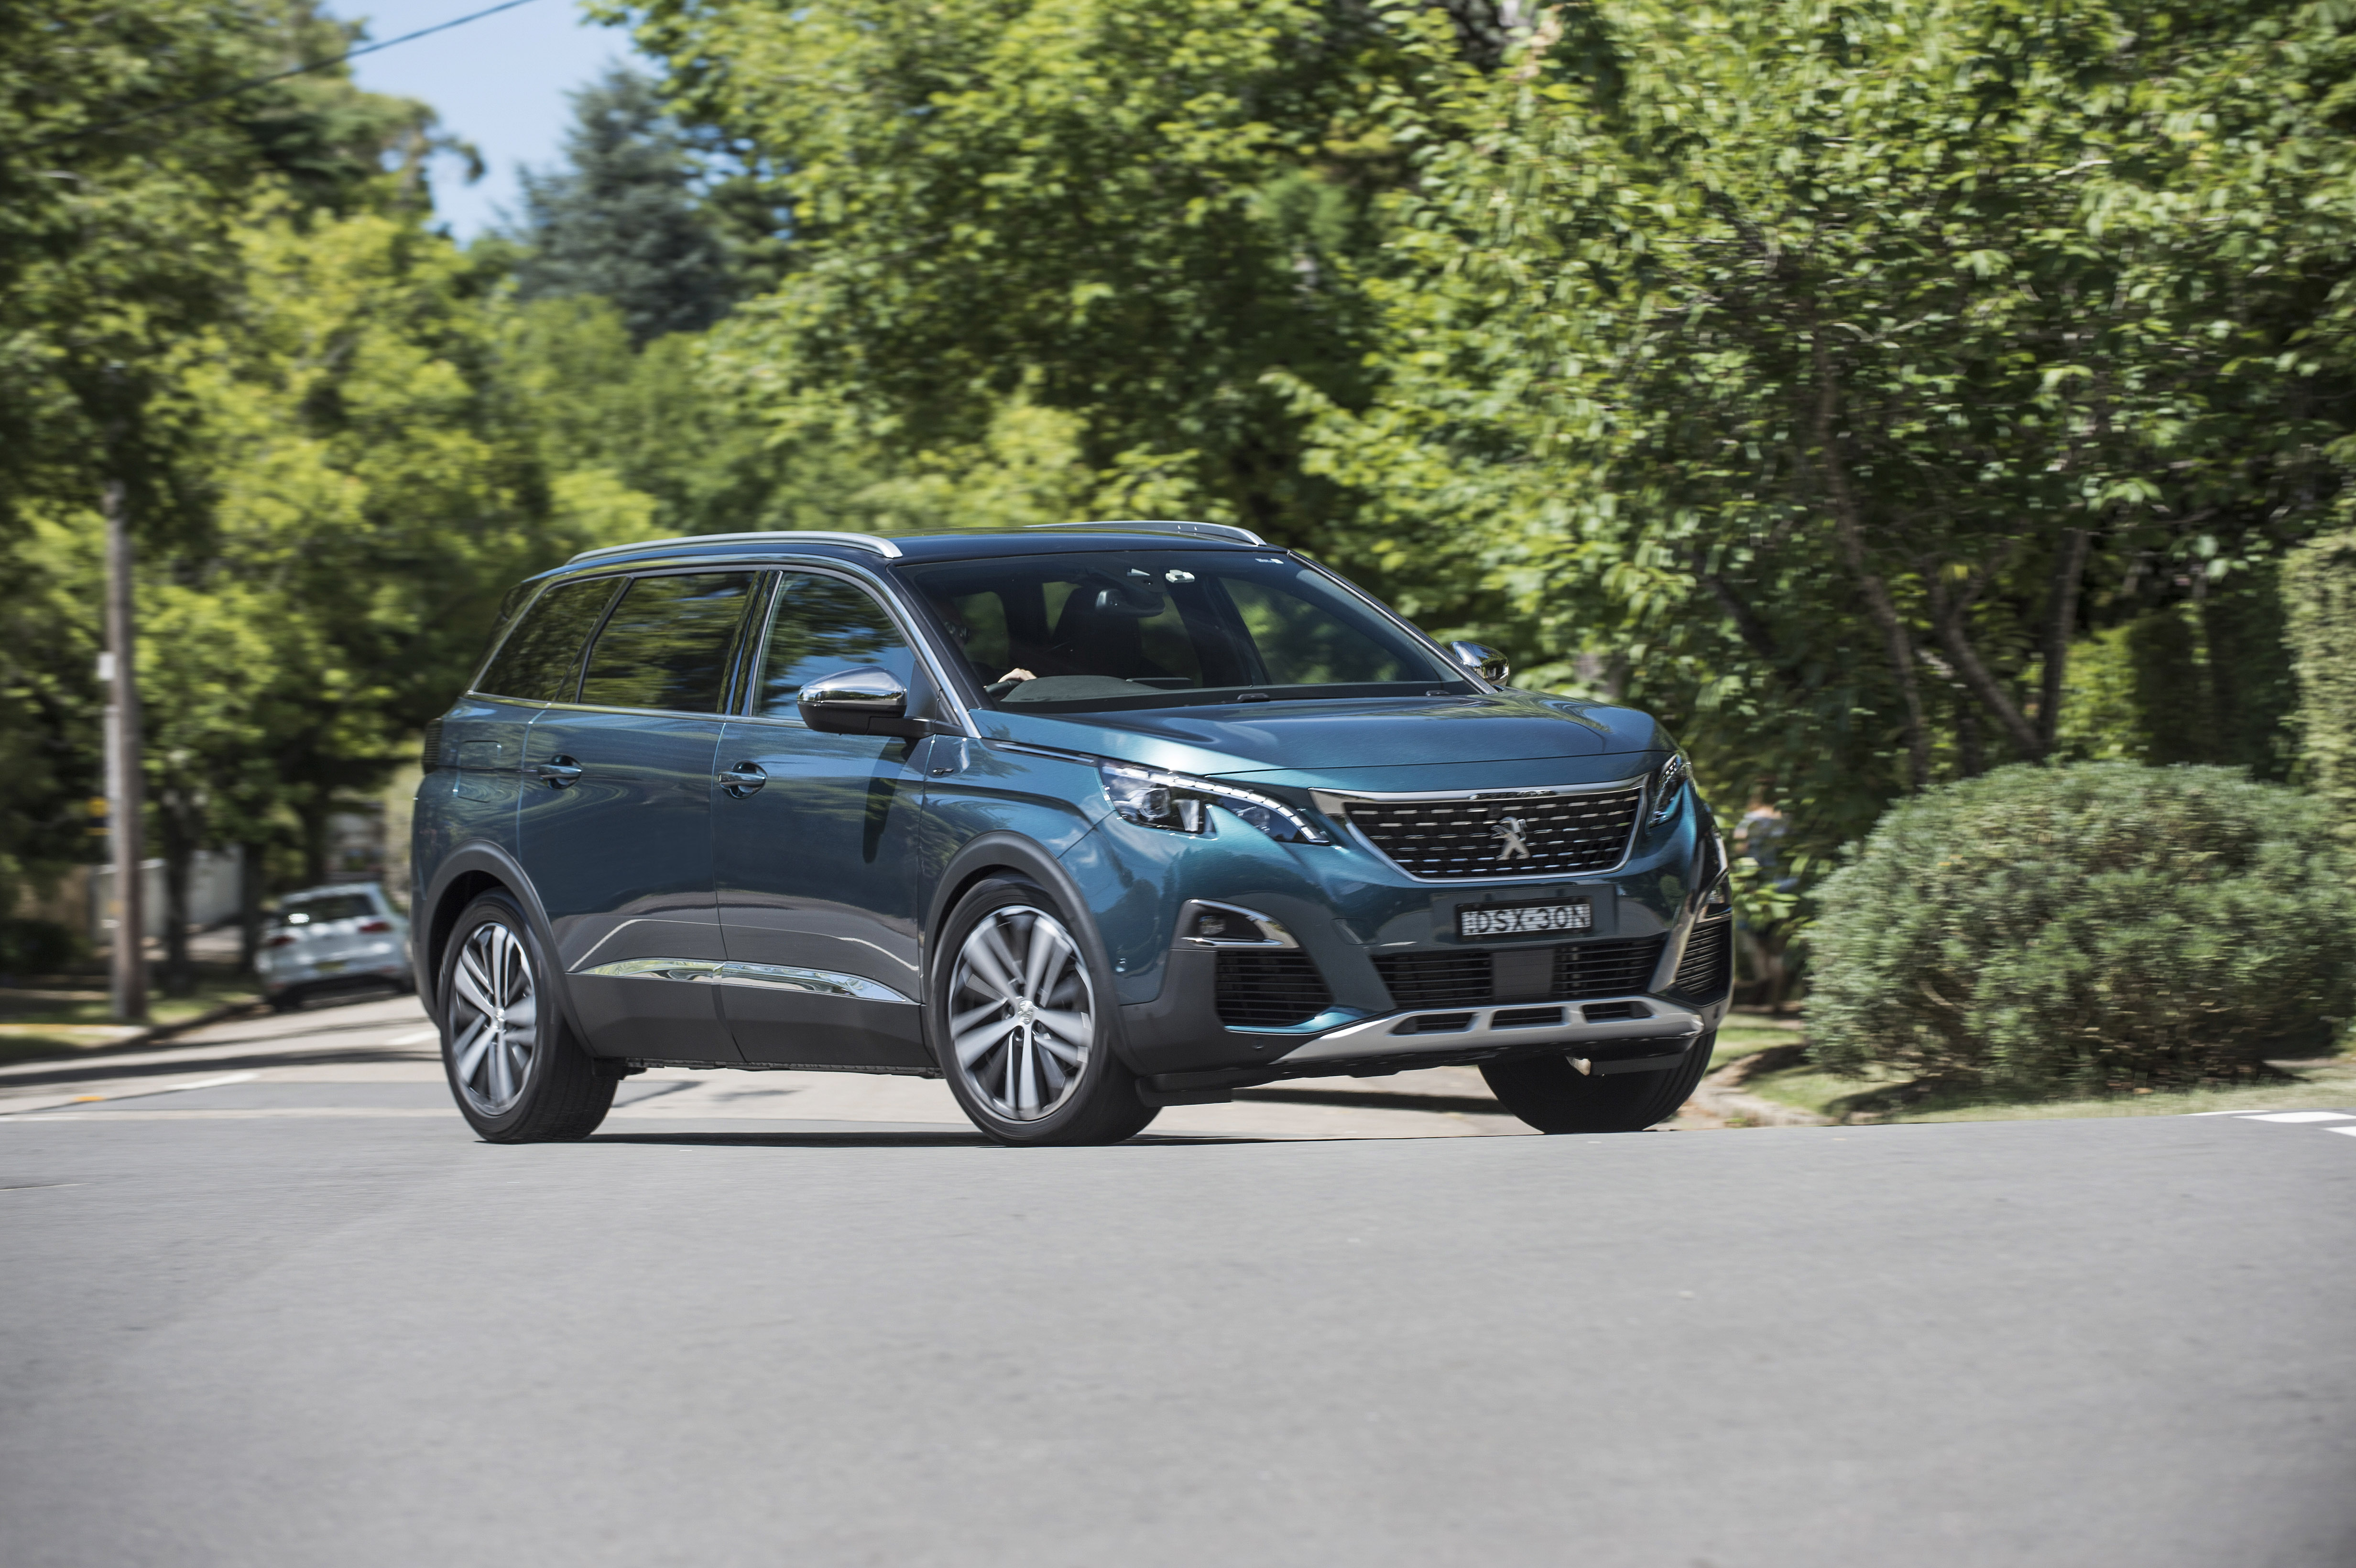 2018 Peugeot 5008 first drive review